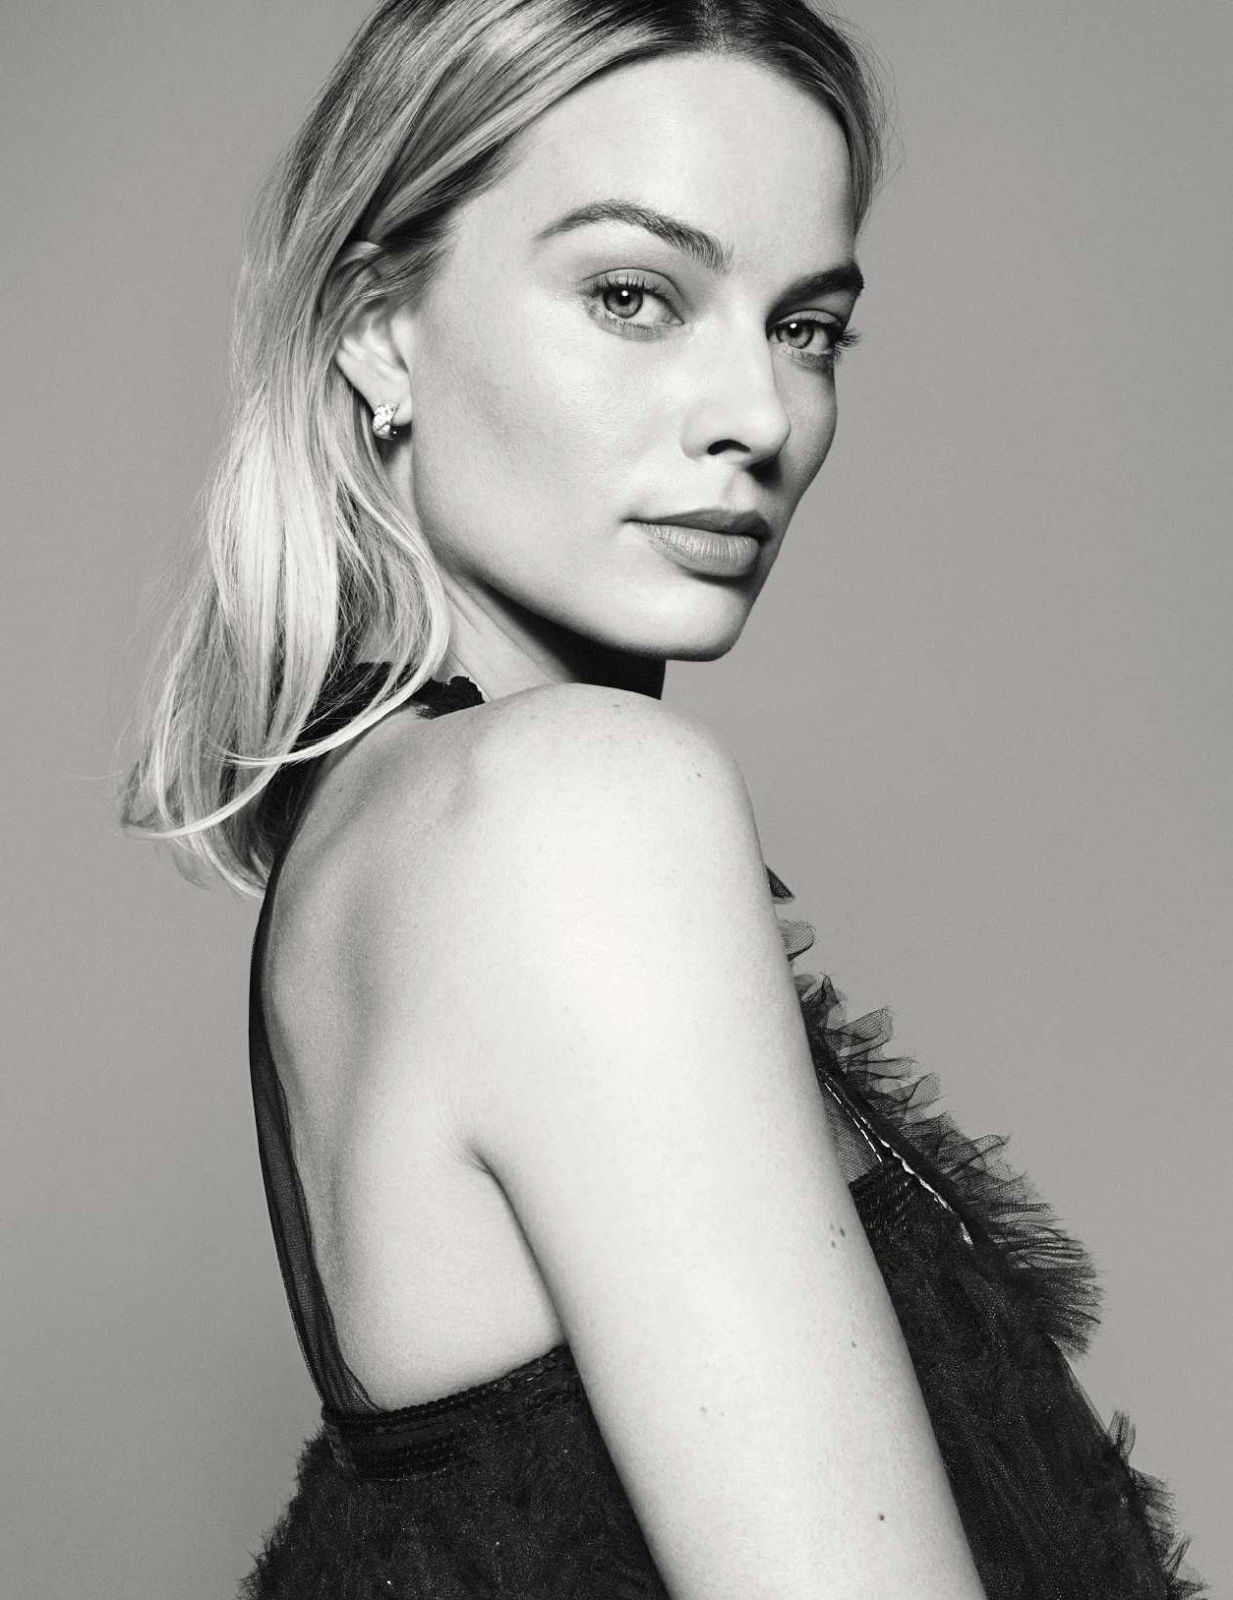 Margot Robbie - beautiful blonde model & actress, portrait for Elle France